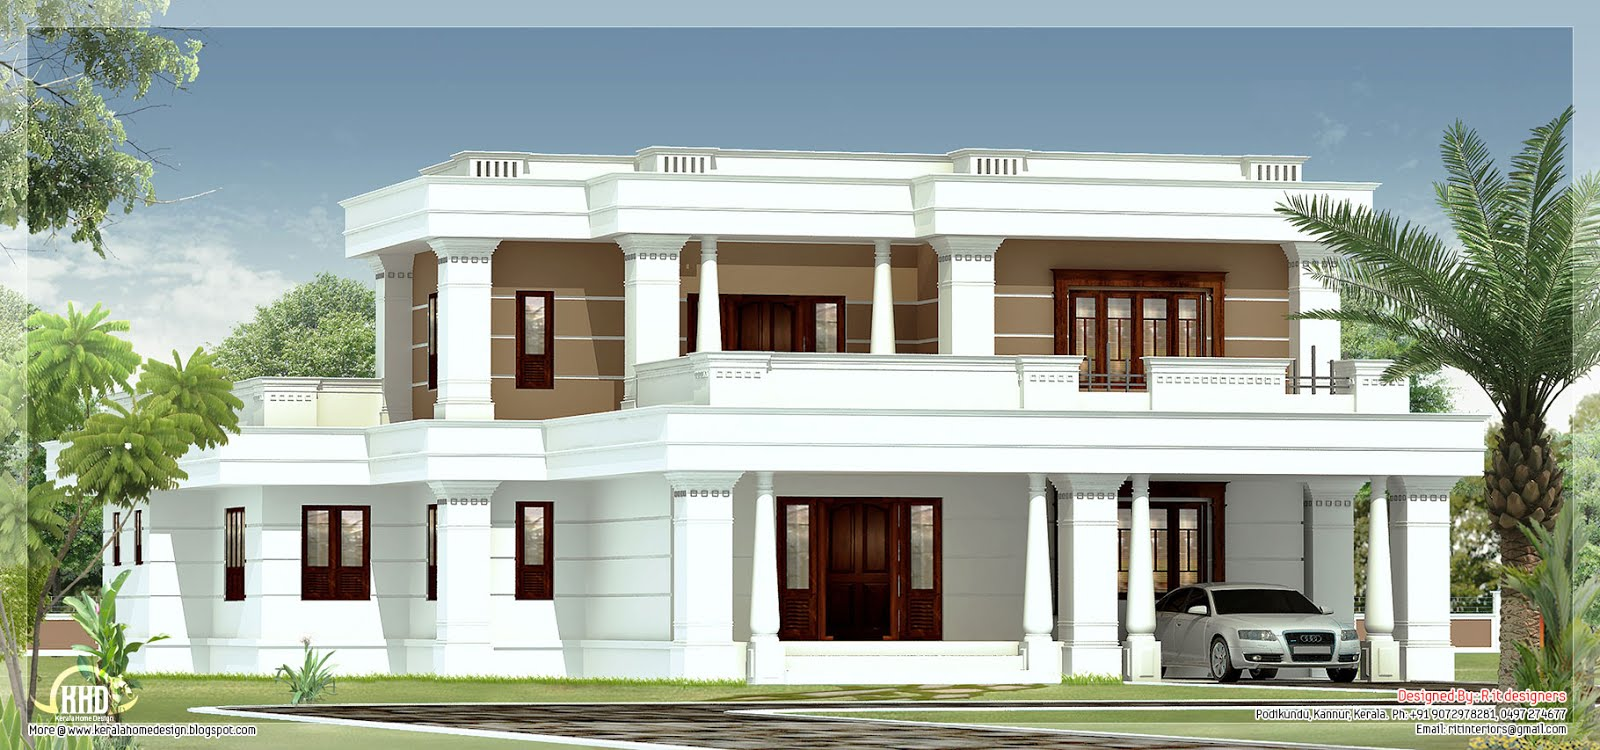 4 bedroom flat roof villa kerala home design and floor plans Villa designs india